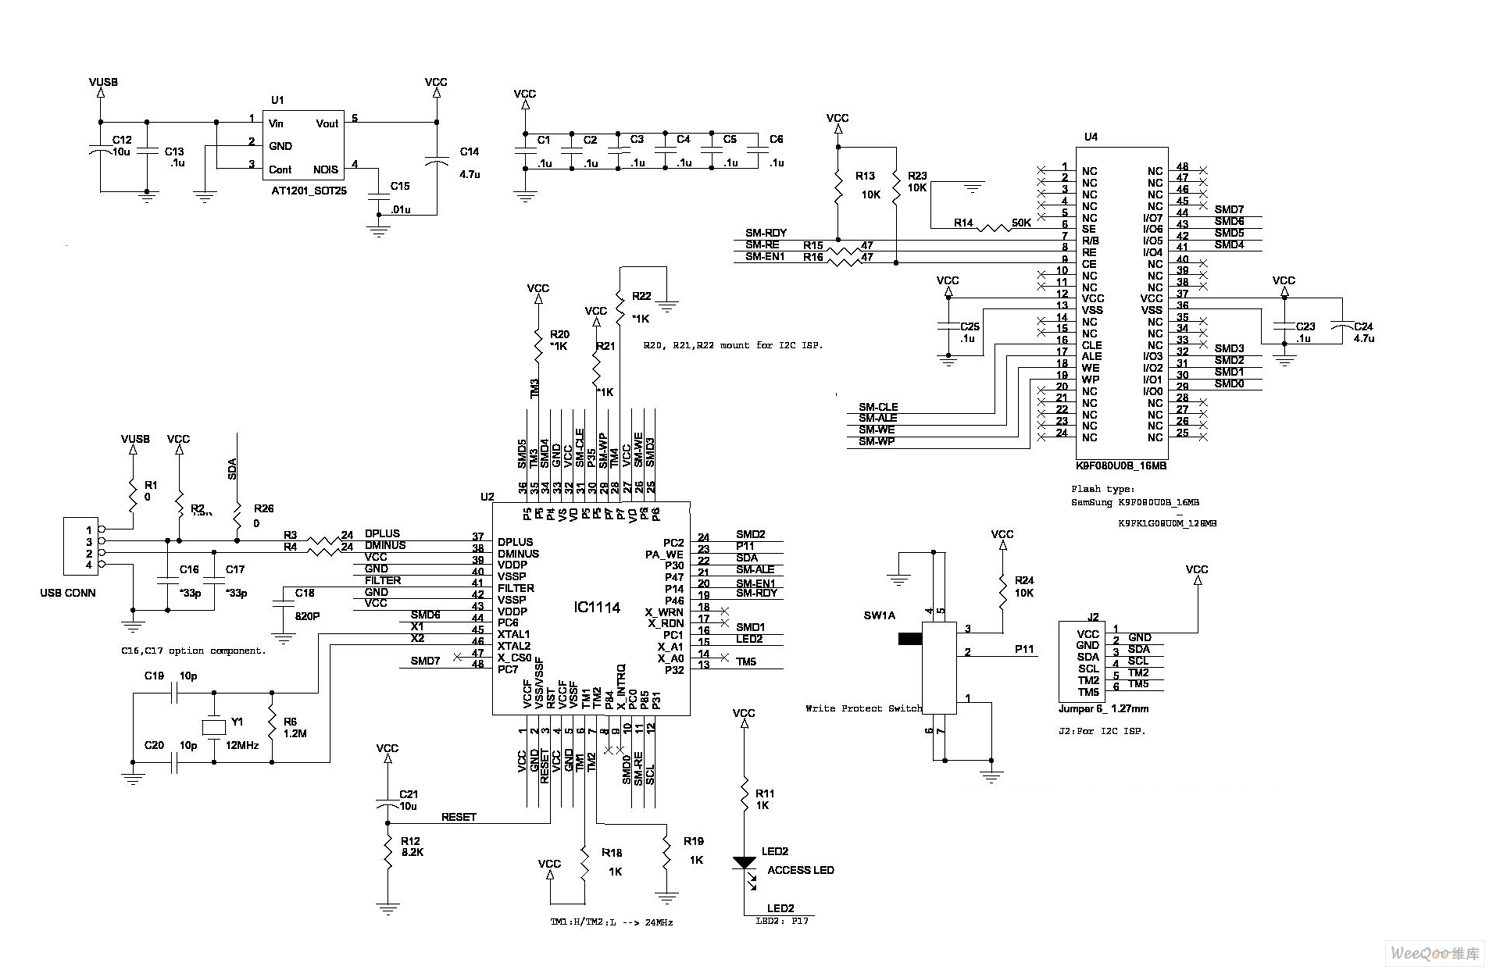 Results Page 594 About 0 To 1 Min 555 Searching Circuits At Pir Sensor Circuit Diagram Using Lm324 The Making Of Crystal Oscillator 80mw Fm Transmitter